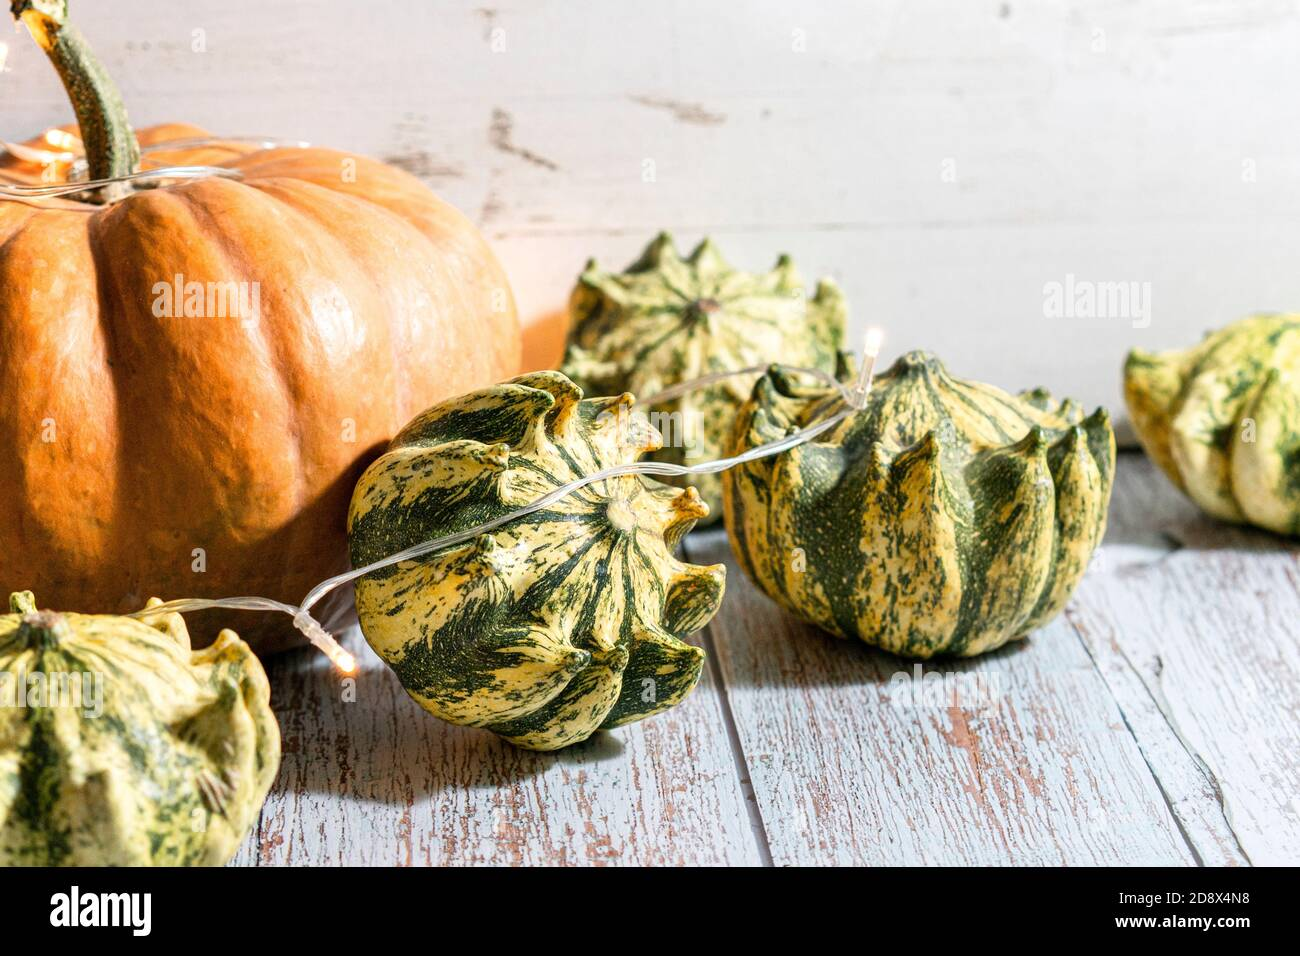 Thanksgiving Background Composition With Various Colorful Pumpkins And Garland On Wooden Background Autumn Holiday Pumpkin Harvest Seasonal Vegetables Natural Healthy Food Stock Photo Alamy